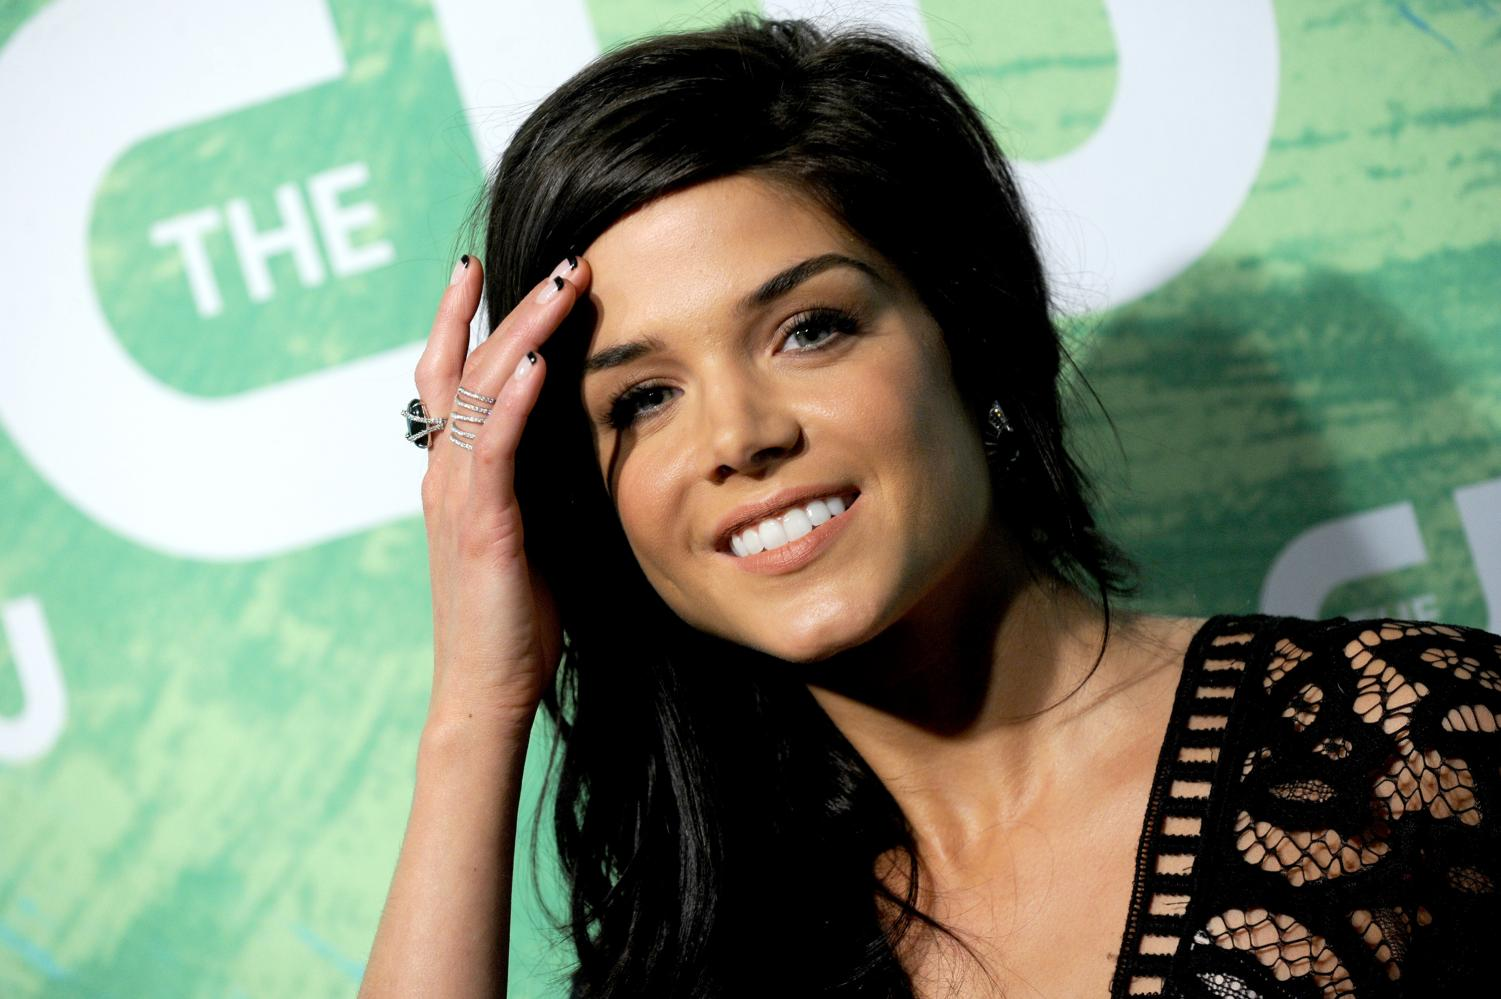 Actress Marie Avgeropoulos, who plays Octavia Blake on CW's 'The 100,' poses for a picture.